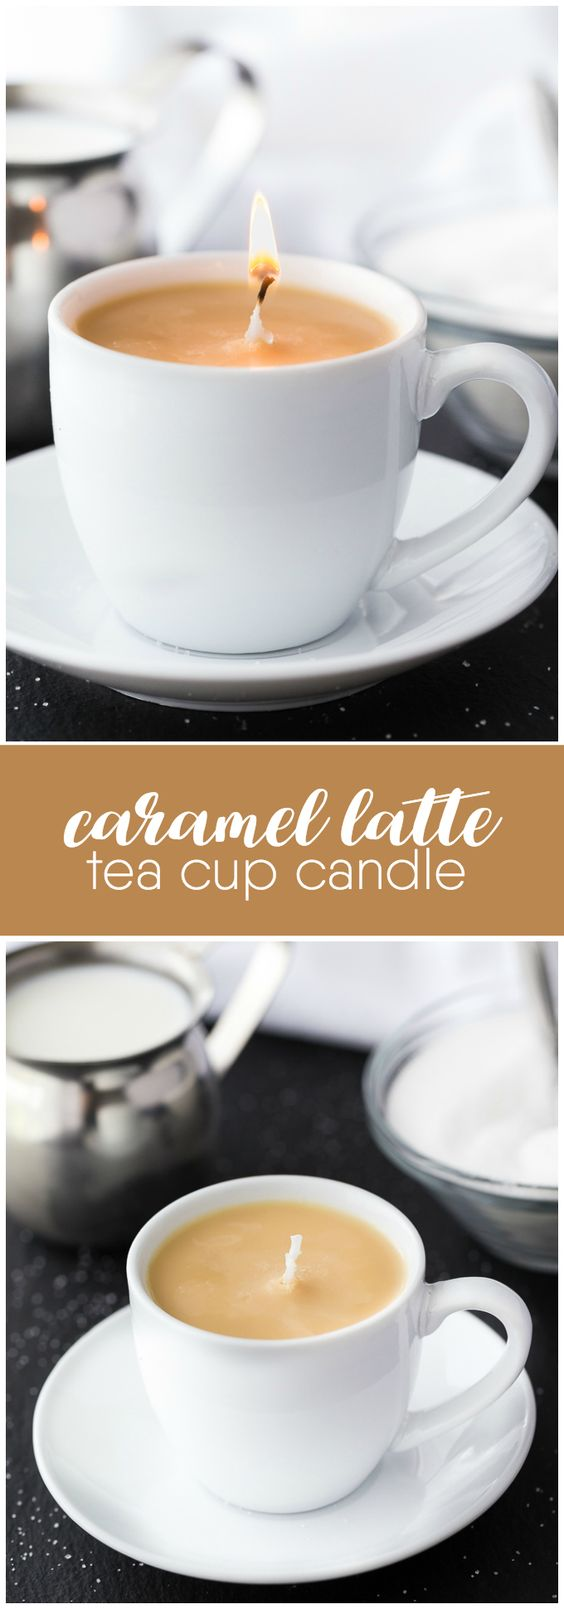 Caramel Latte Tea Cup Candle - A simple DIY gift for a coffee drinker on your holiday gift list. Who knew making candles could be so simple?!